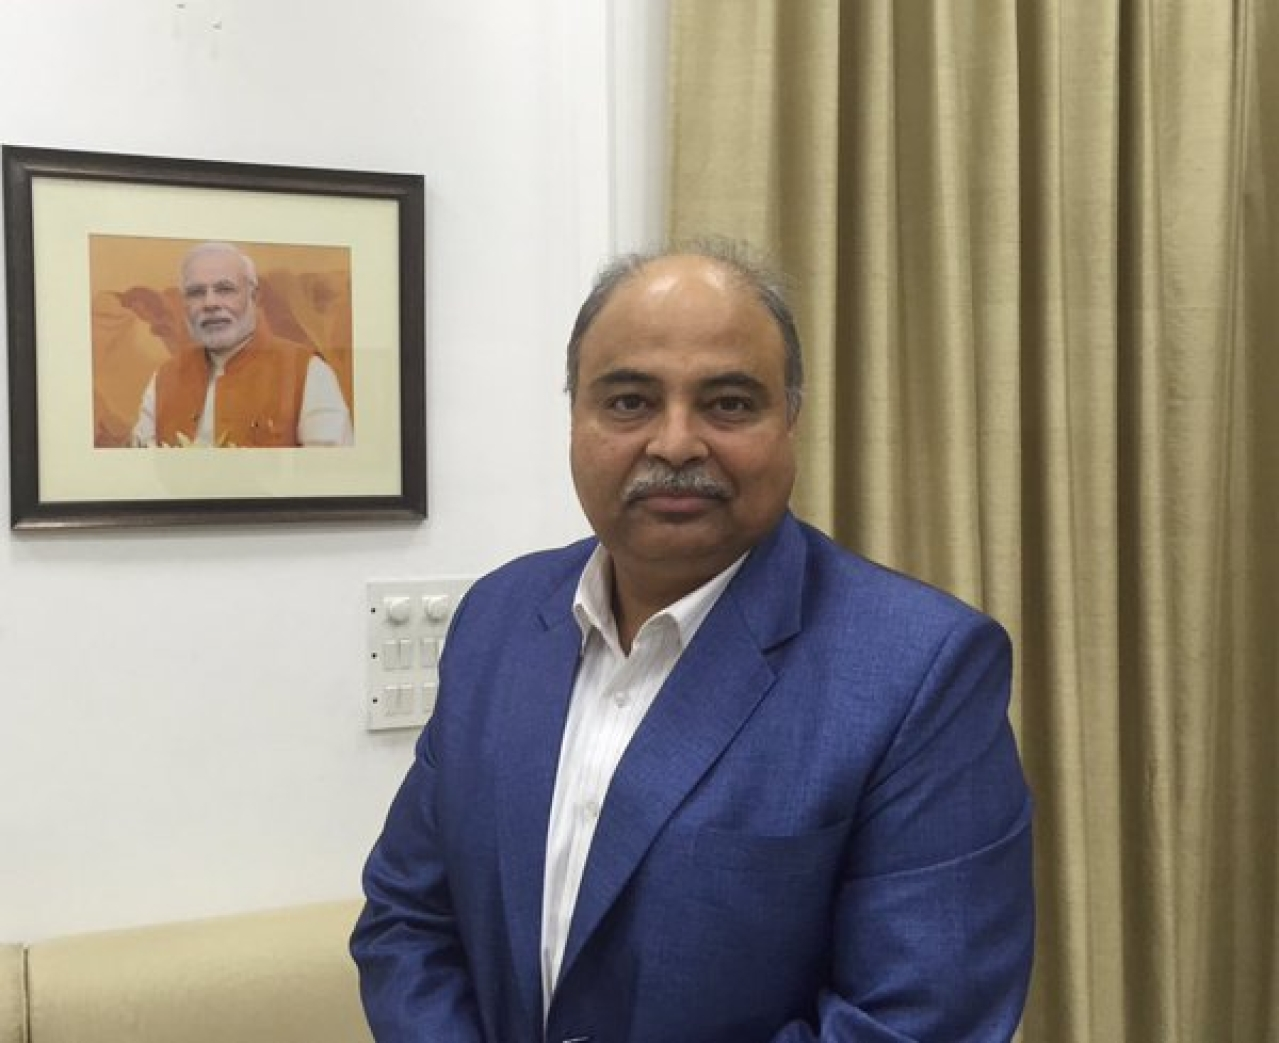 Uday Mahurkar at the Prime Minister's Office to meet Prime Minister Narendra Modi. (@UdayMahurkar/Twitter)